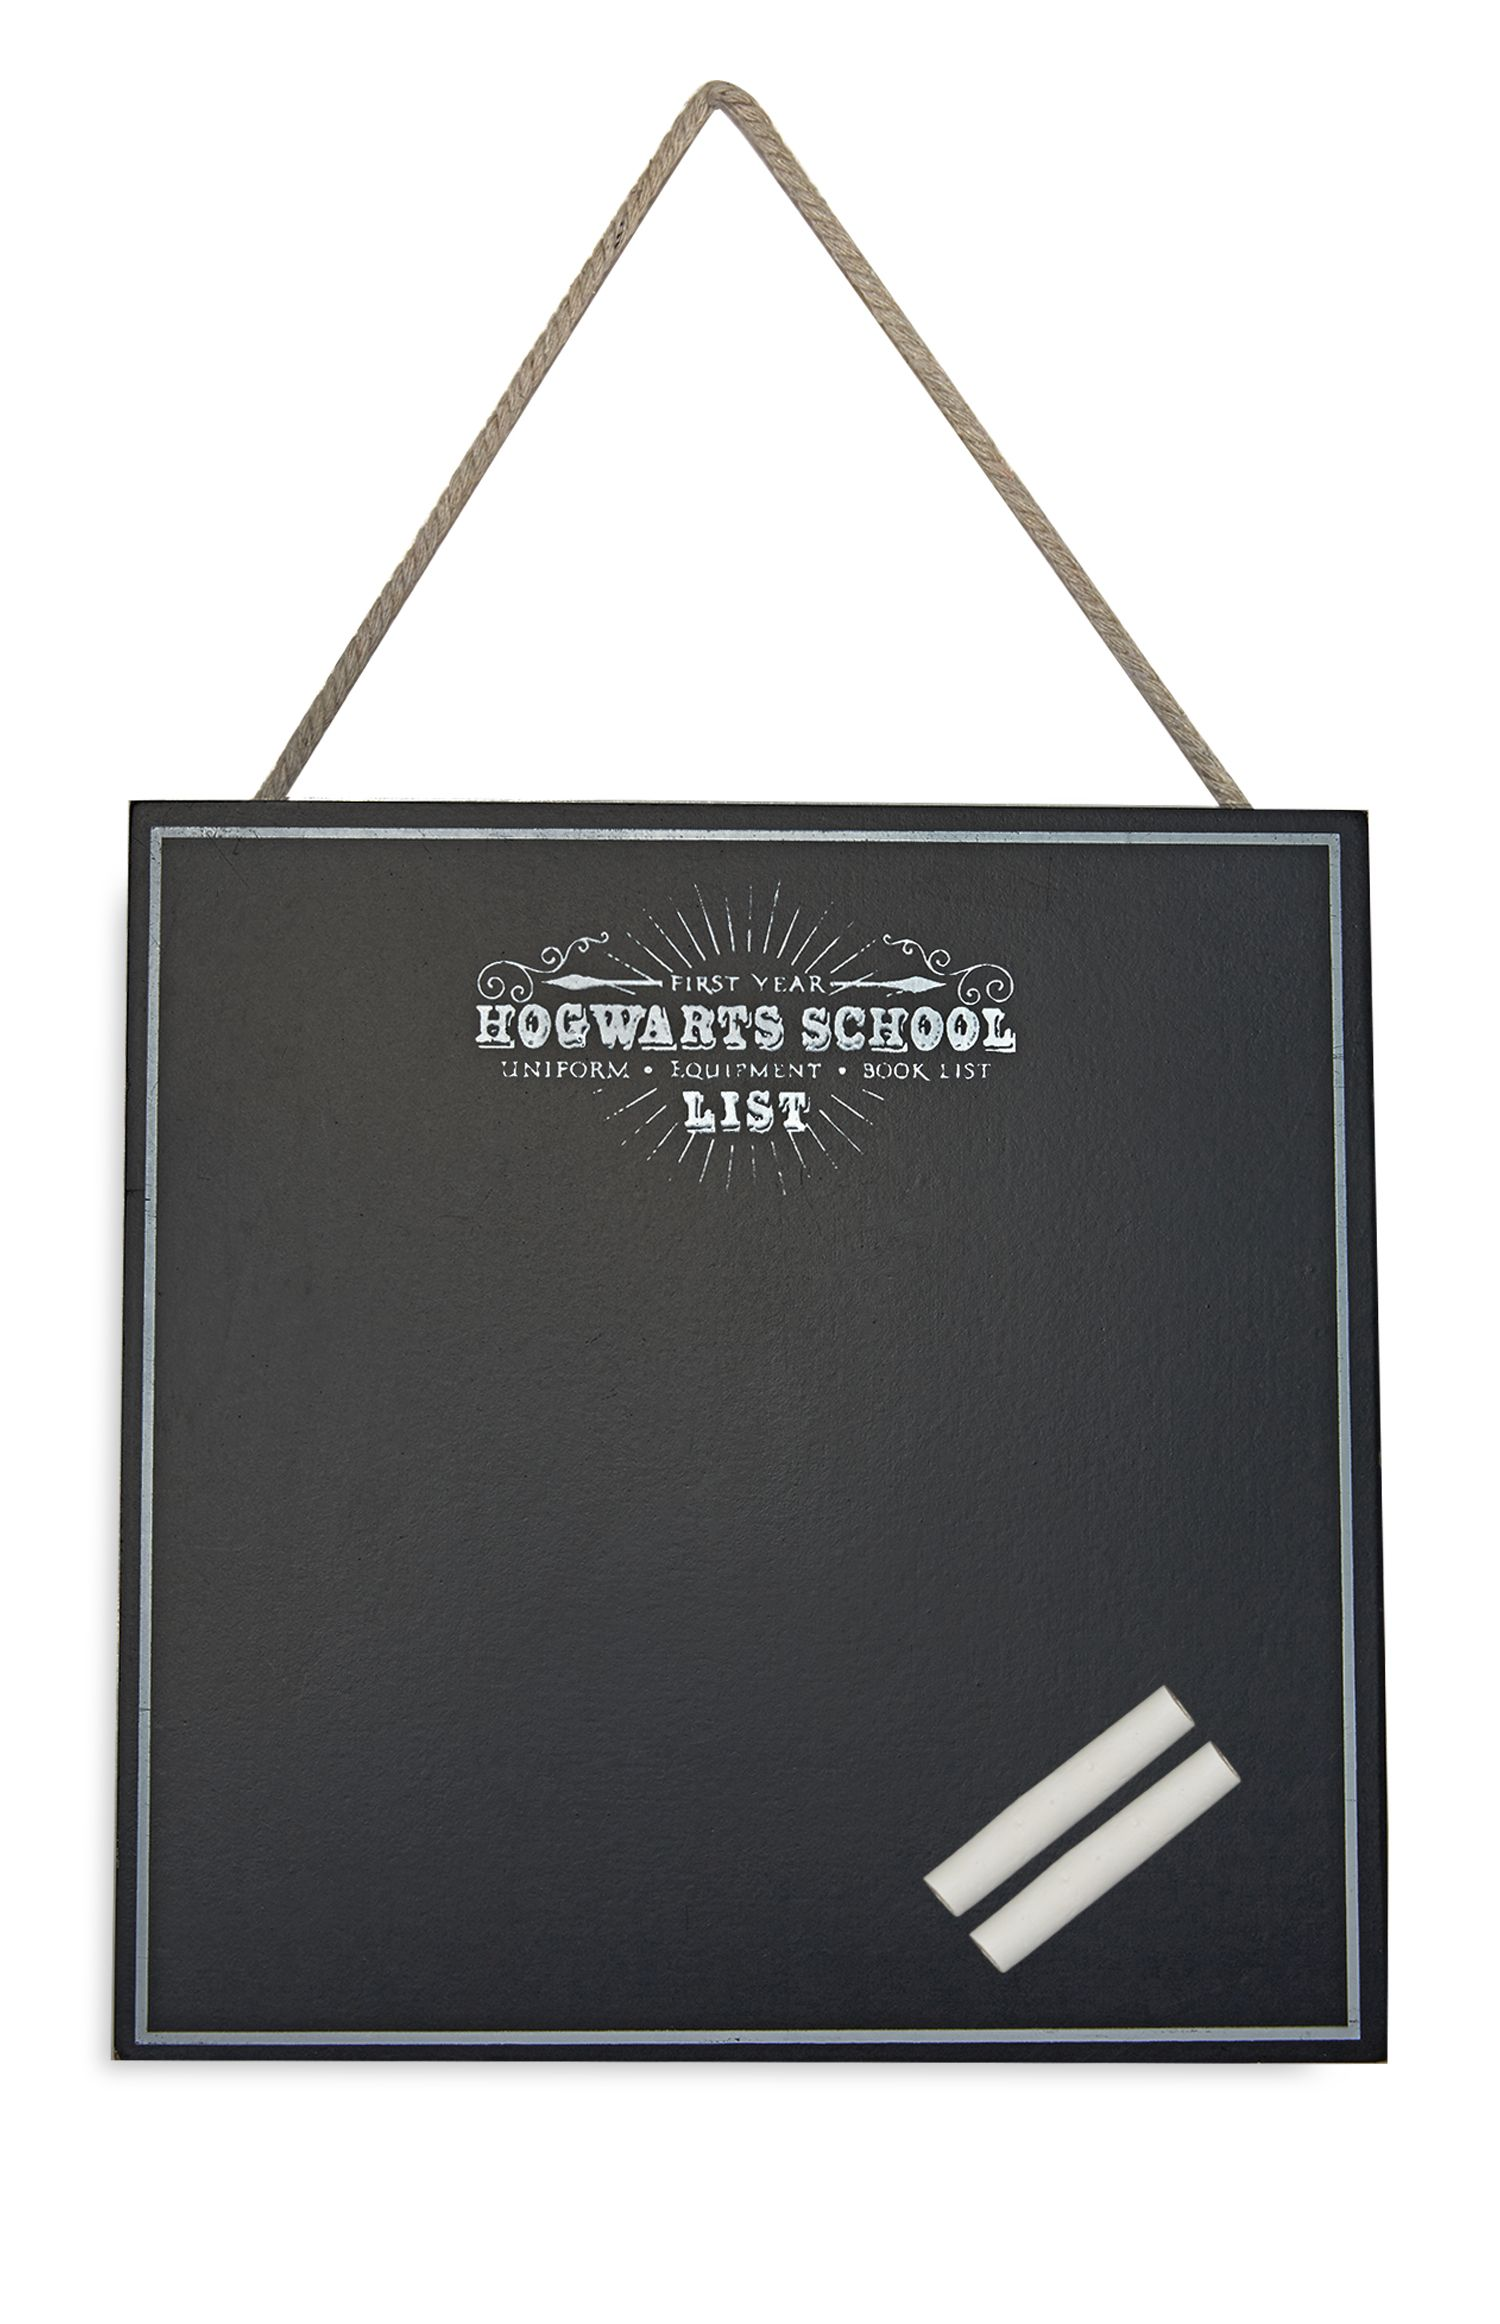 Harry Potter merchandise Primark Harry Potter homeware range